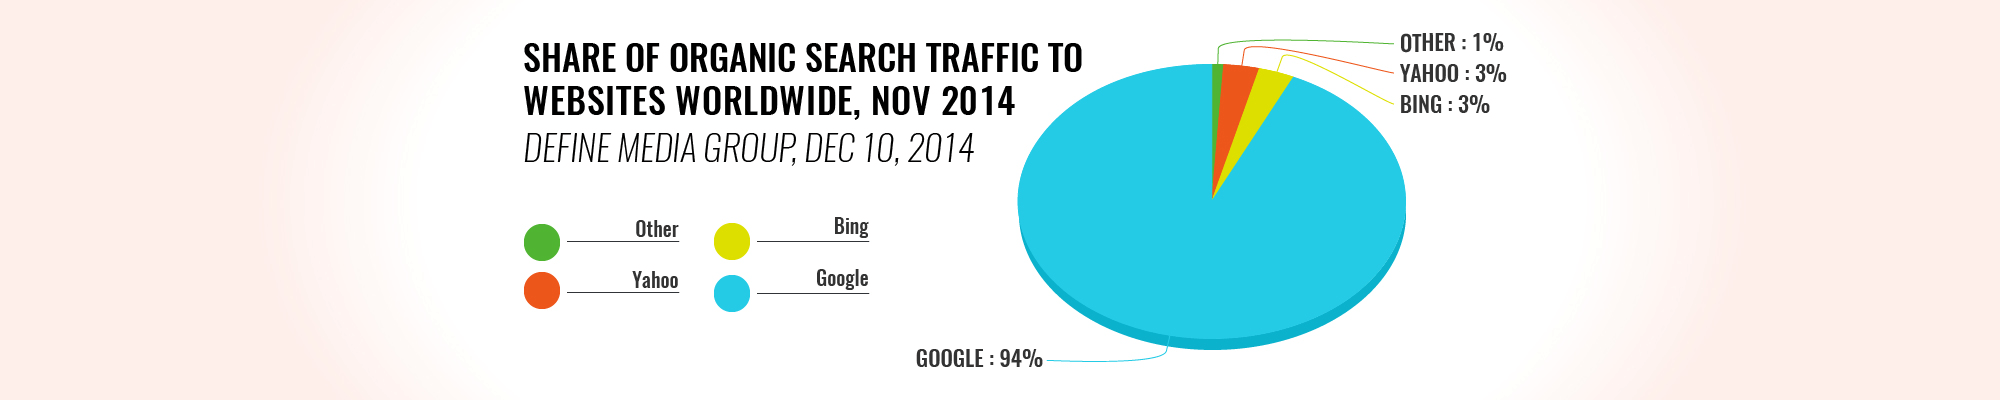 Search traffic to websites worldwide